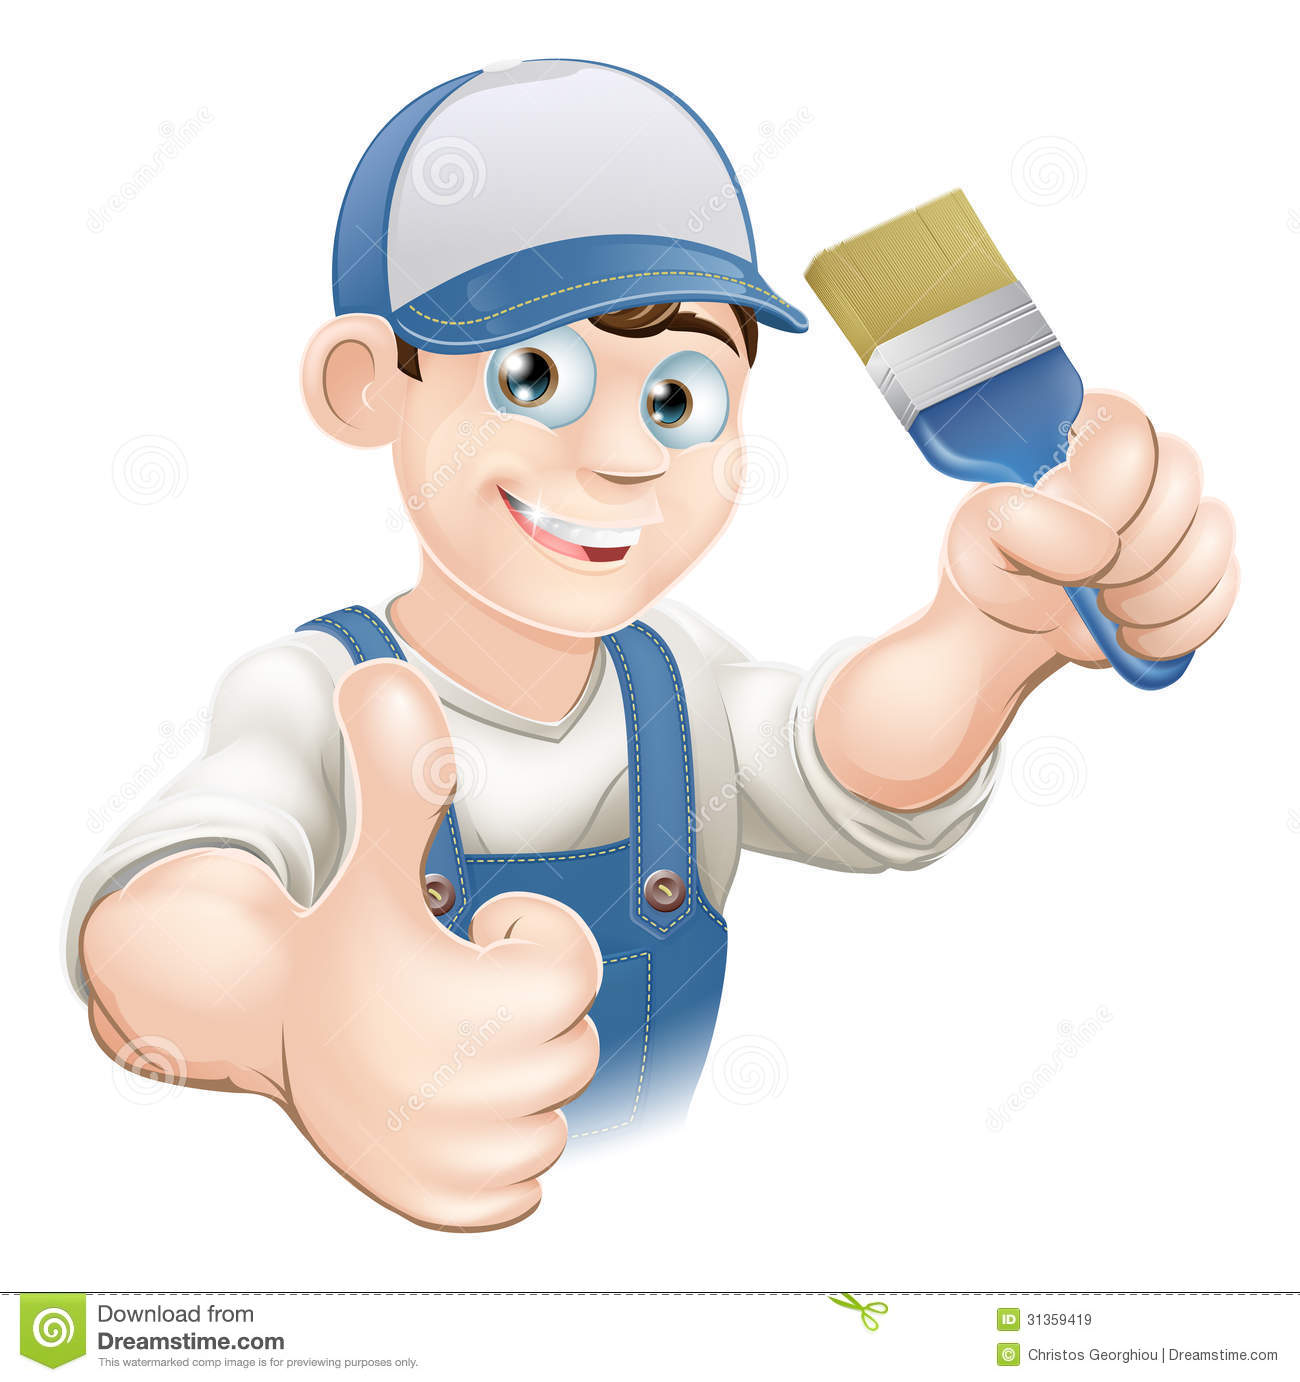 Http Www Dreamstime Com Royalty Free Stock Images Cartoon Painter Decorator Illustration Holding Paintbrush Giving Thumbs Up Image31359419